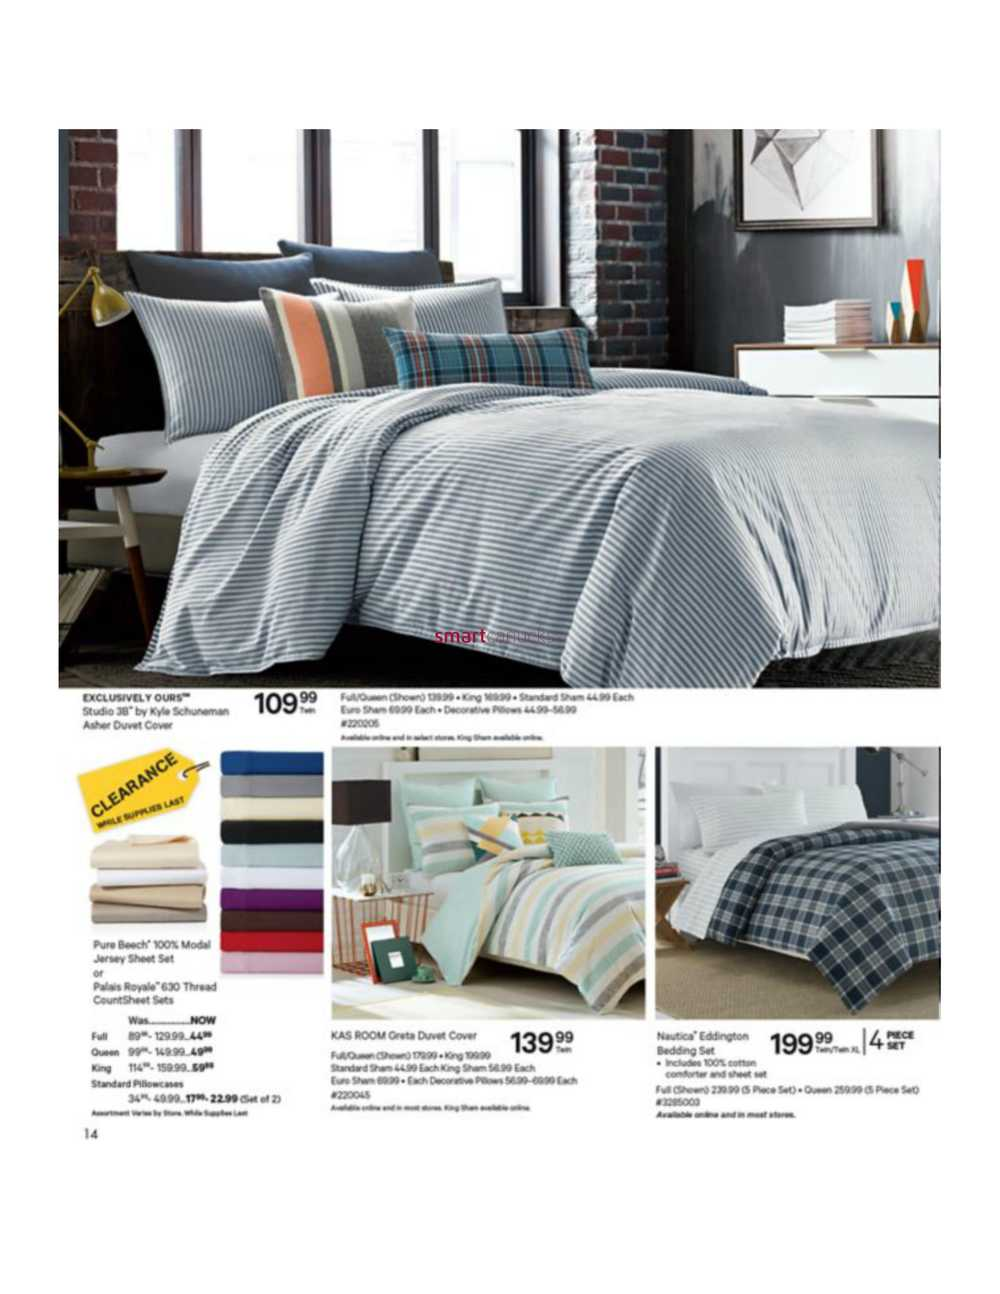 Bed Bath And Beyond August Circular